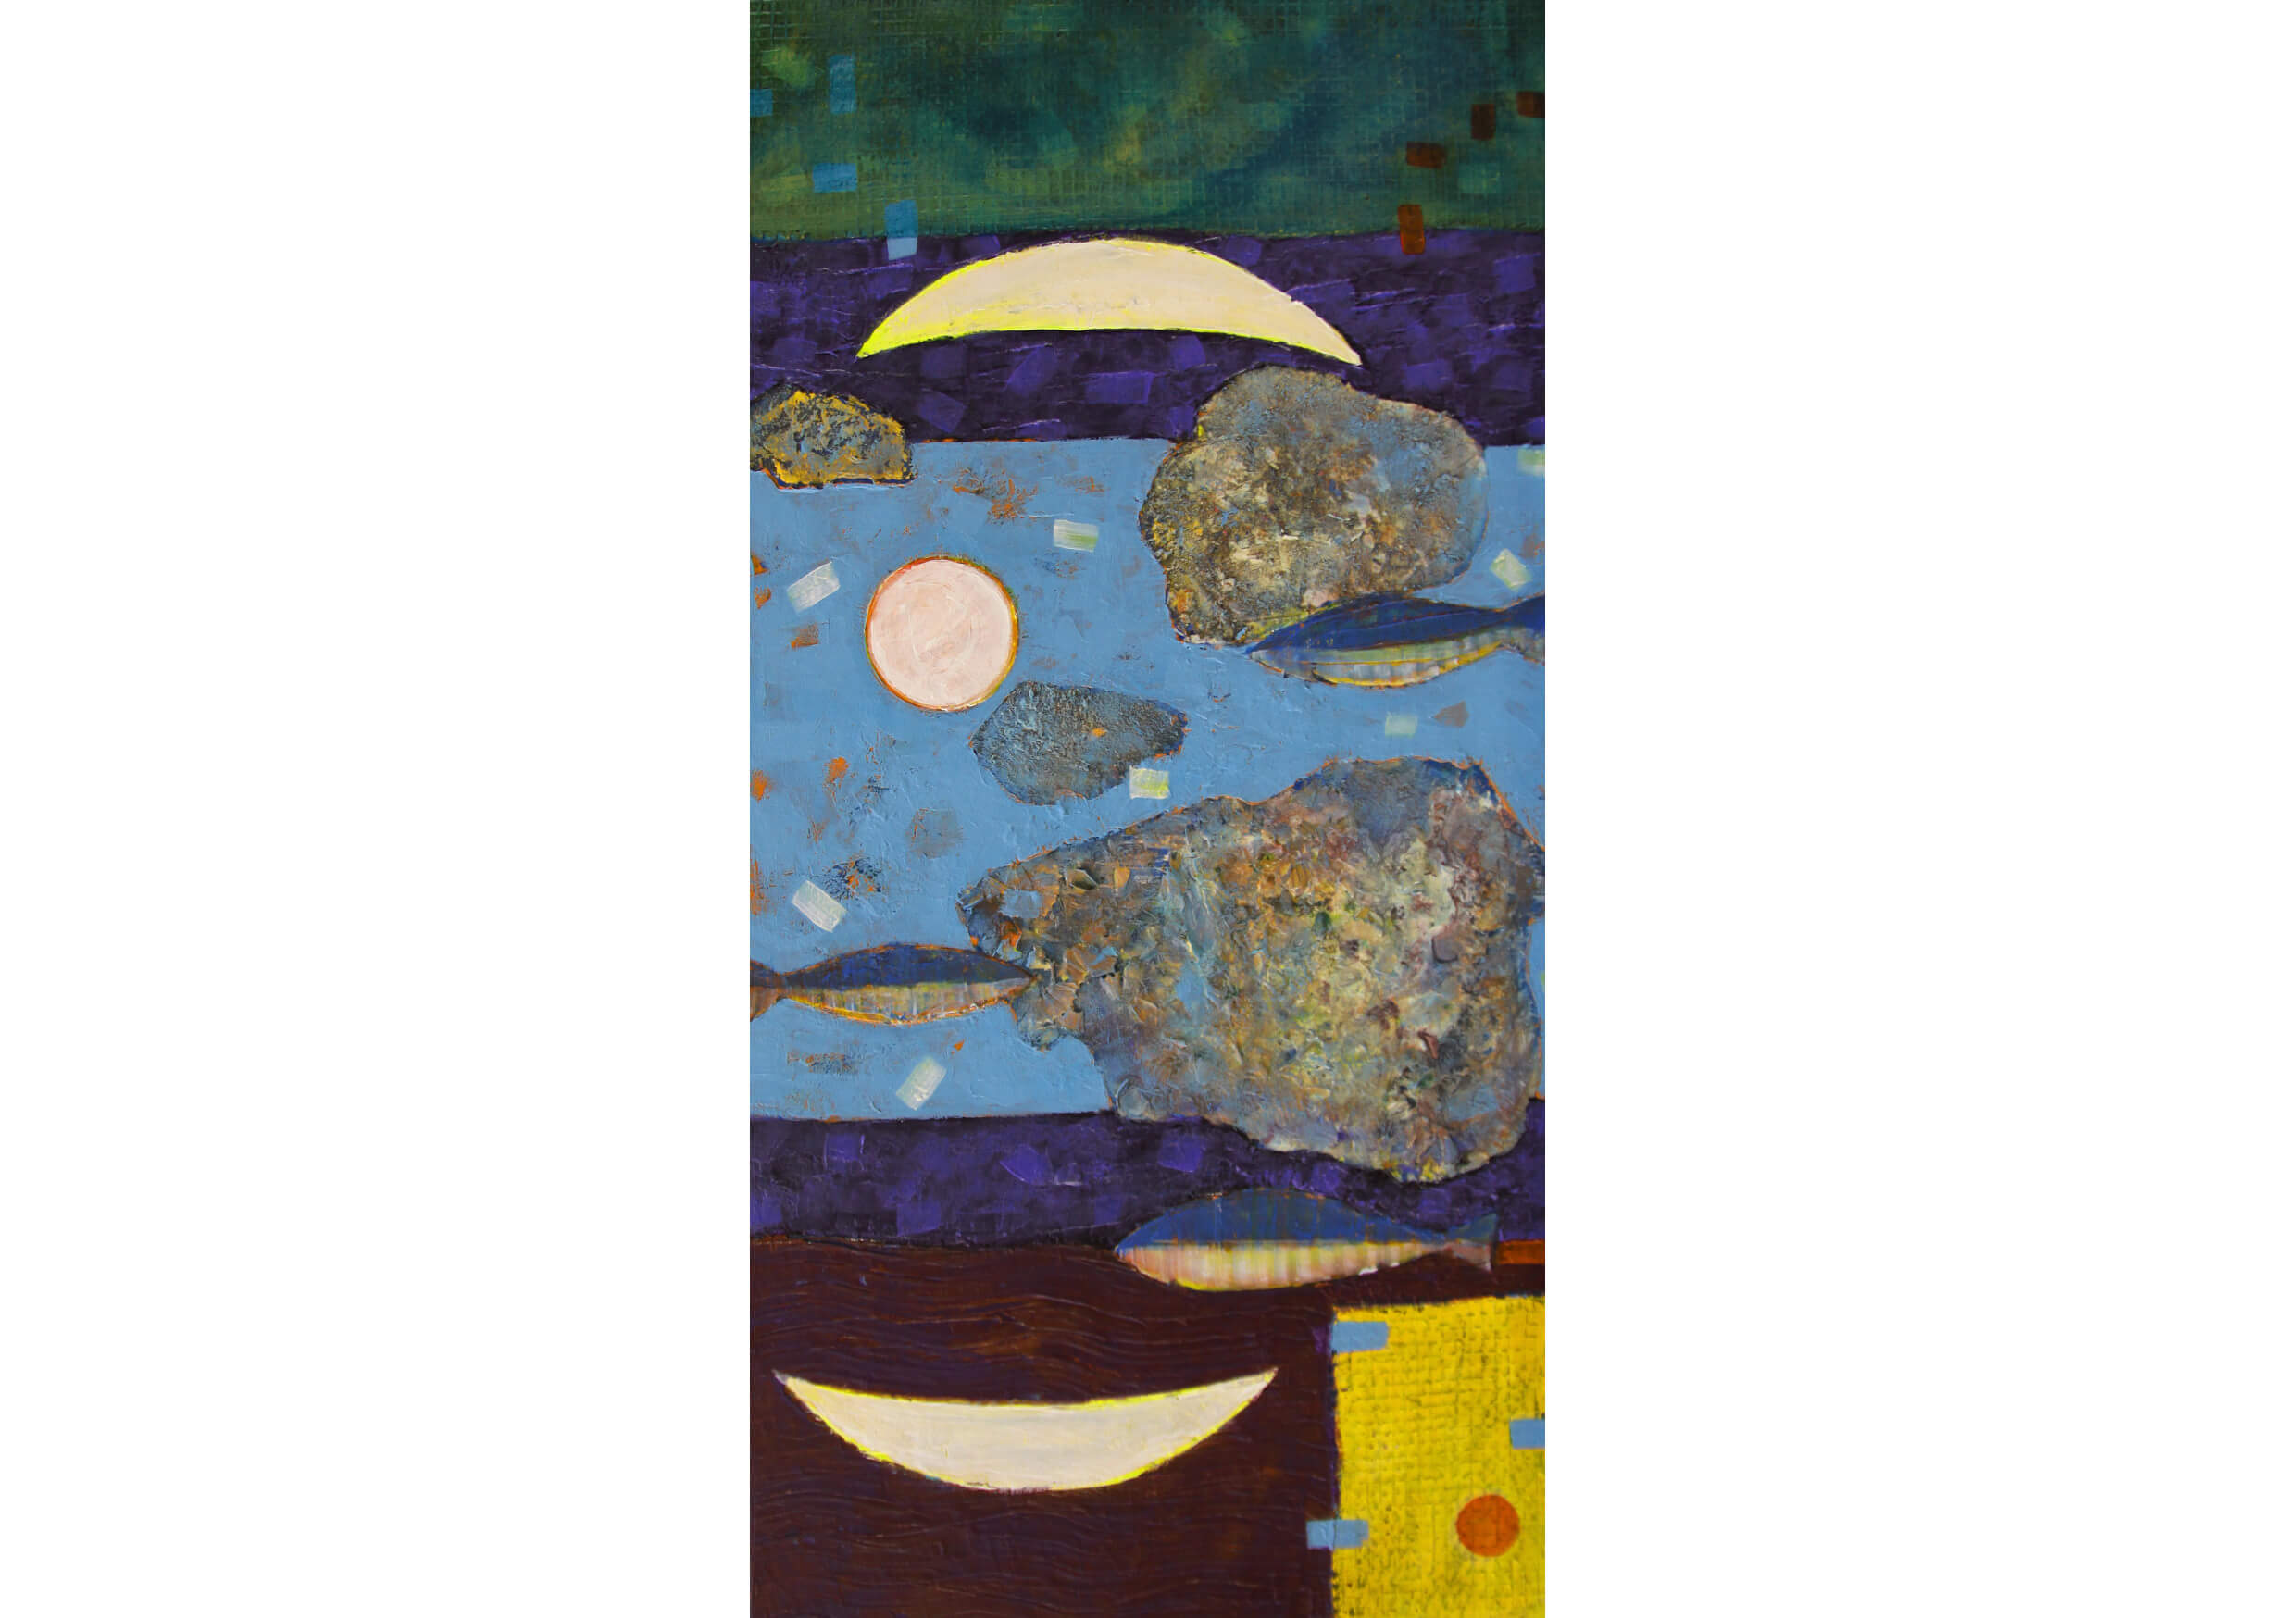 Series White Moon III, Mixed media on canvas, 80 x 40 cm